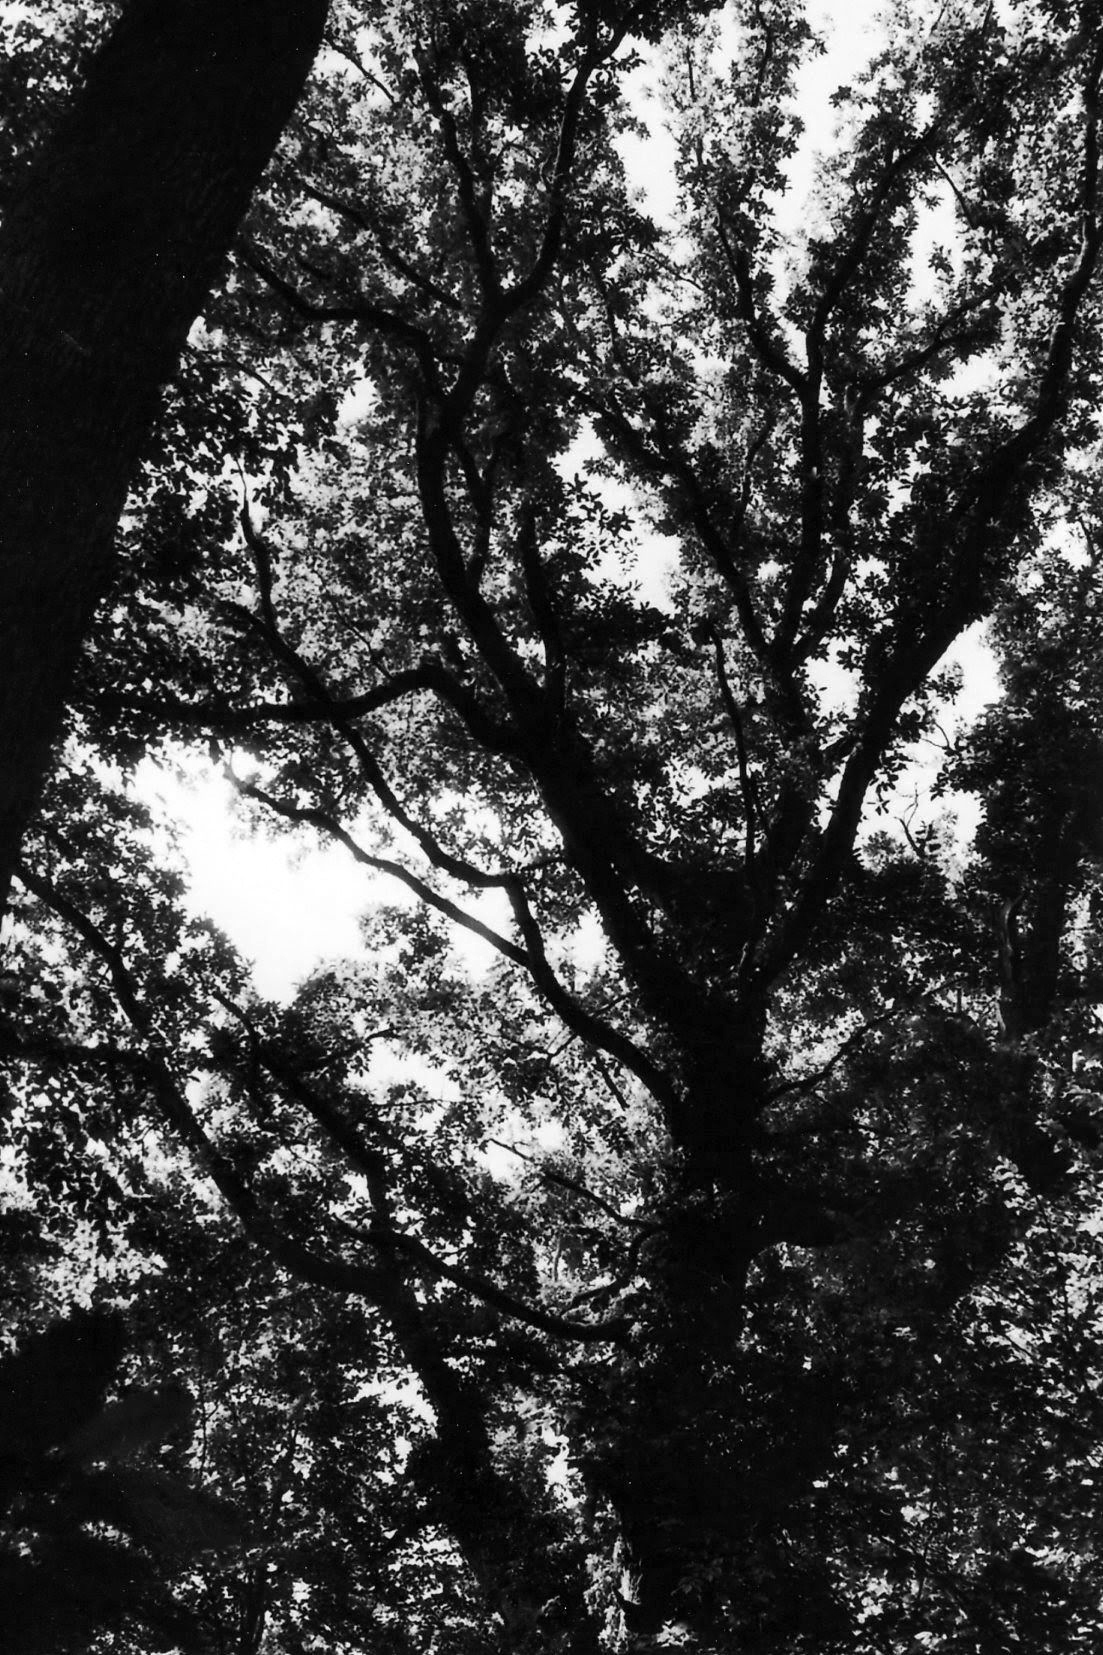 View through the treetops, branches and leaves.